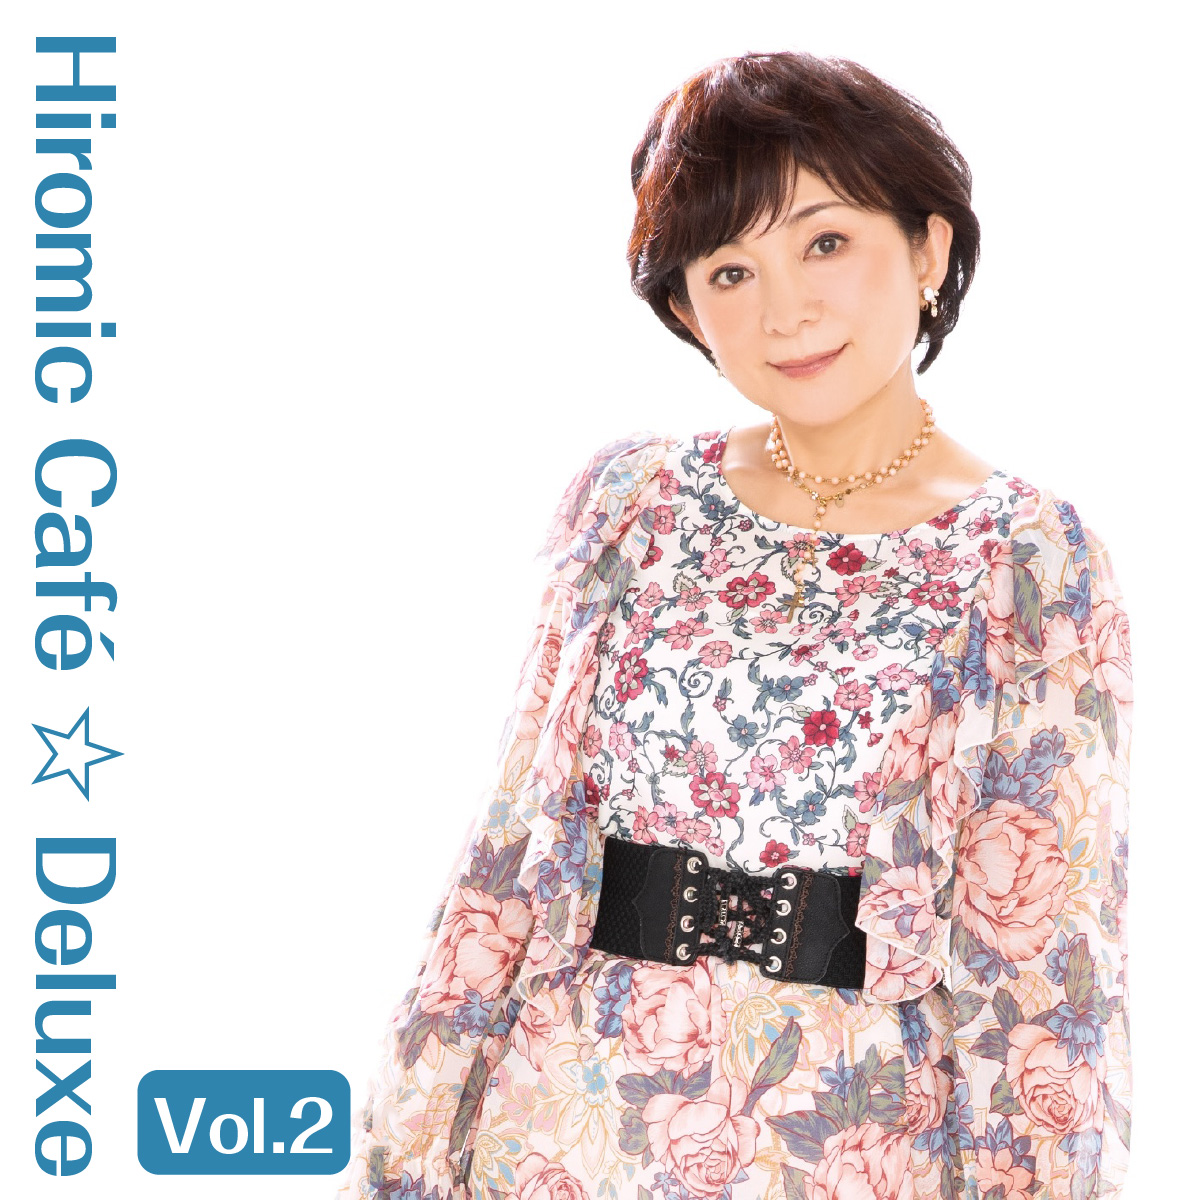 Hiromic Café ☆ Deluxe Vol.2